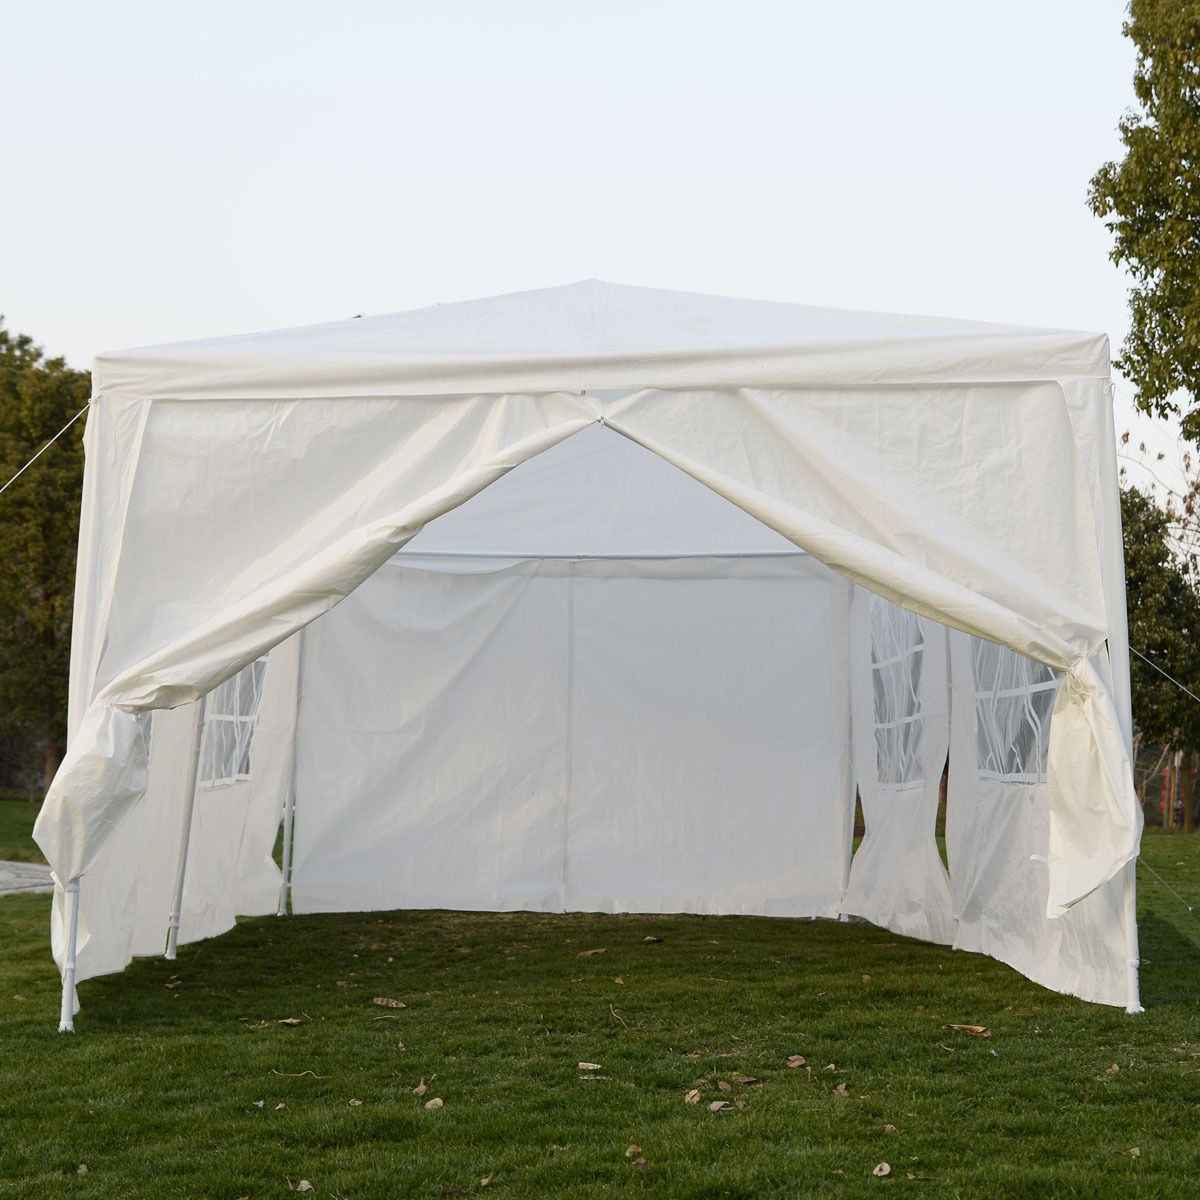 Generic YCUS150720-238  Eventsing Tent He Heavy duty Outdoor 10x20Canopy Gazebo Pavilion Party Wedding Tent Cater Events Outdoor 10